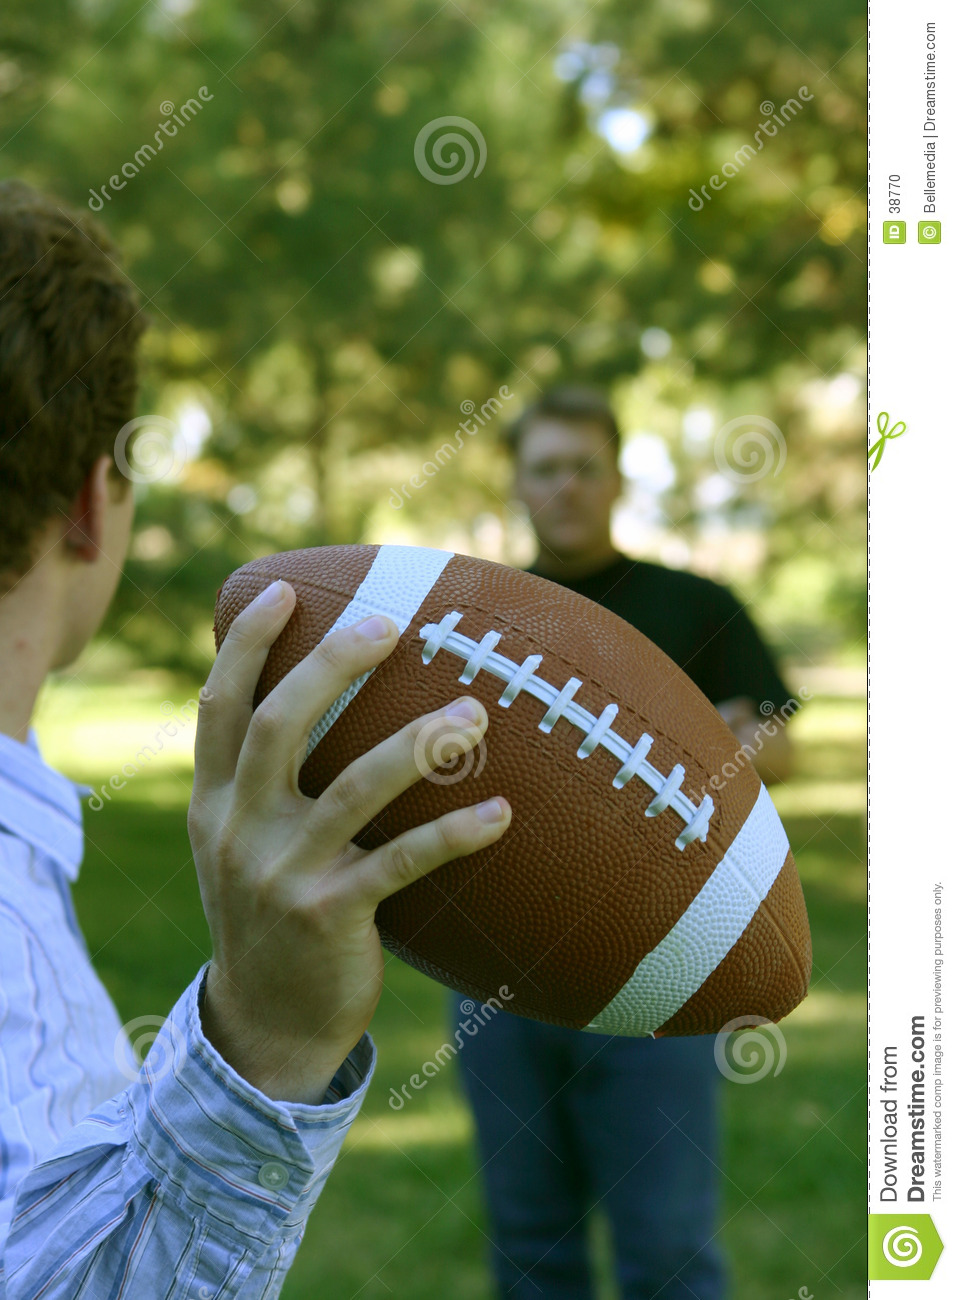 Throwing the football